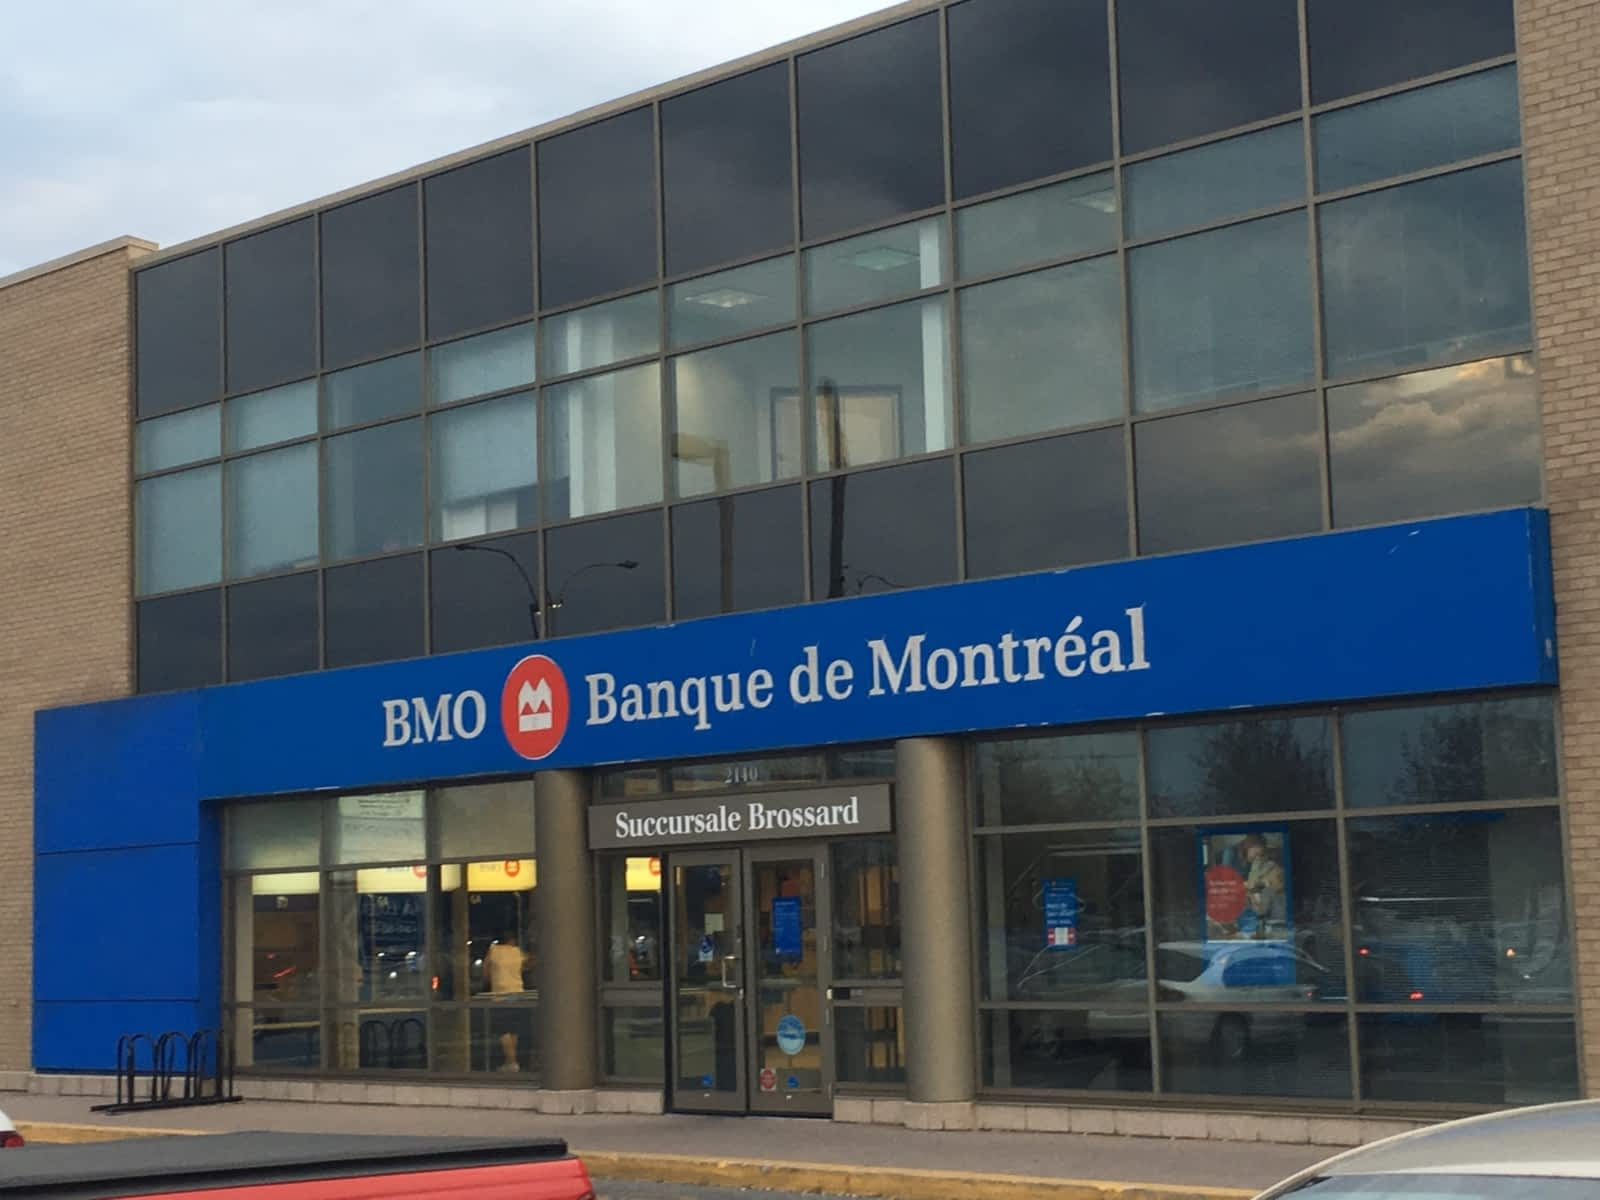 bmo locator, harris bank locations near me